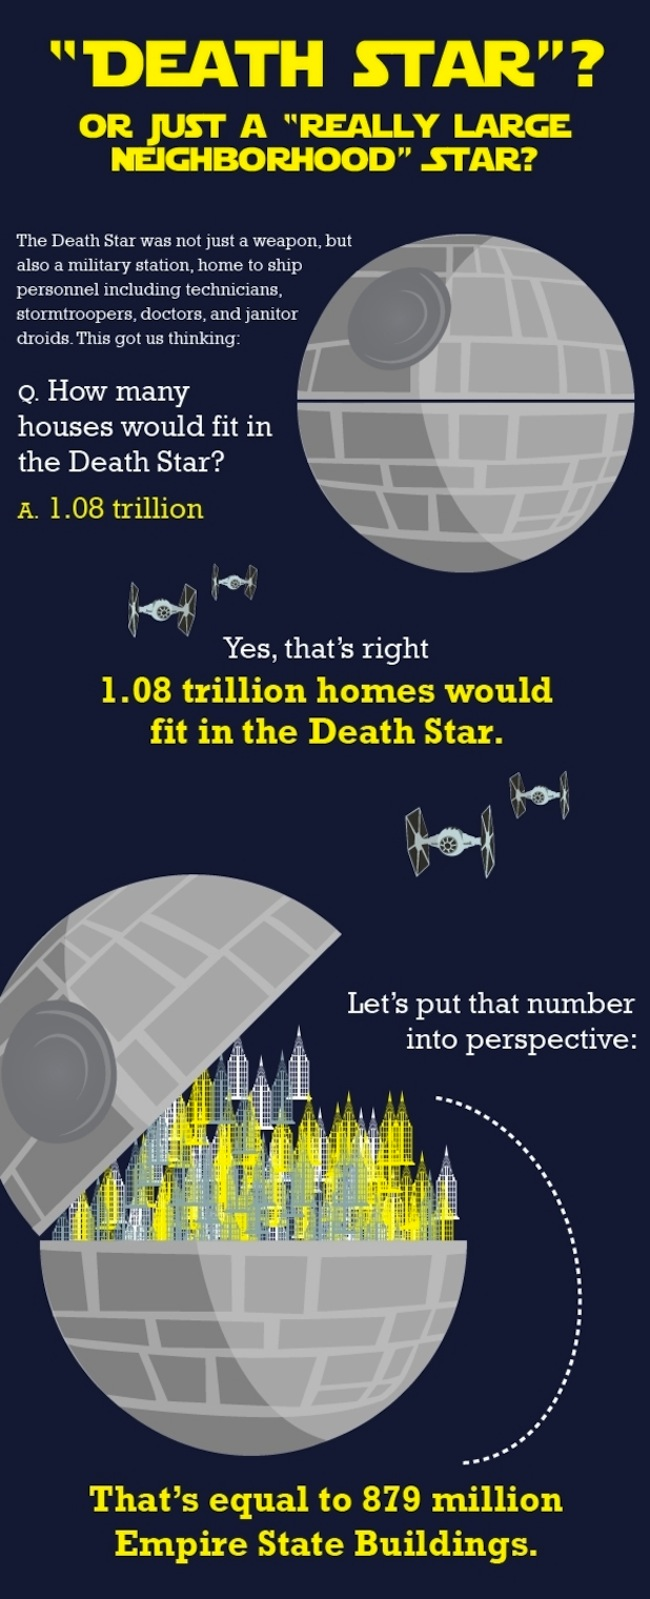 death star infographic homes How many houses does it take to fill a Death Star?